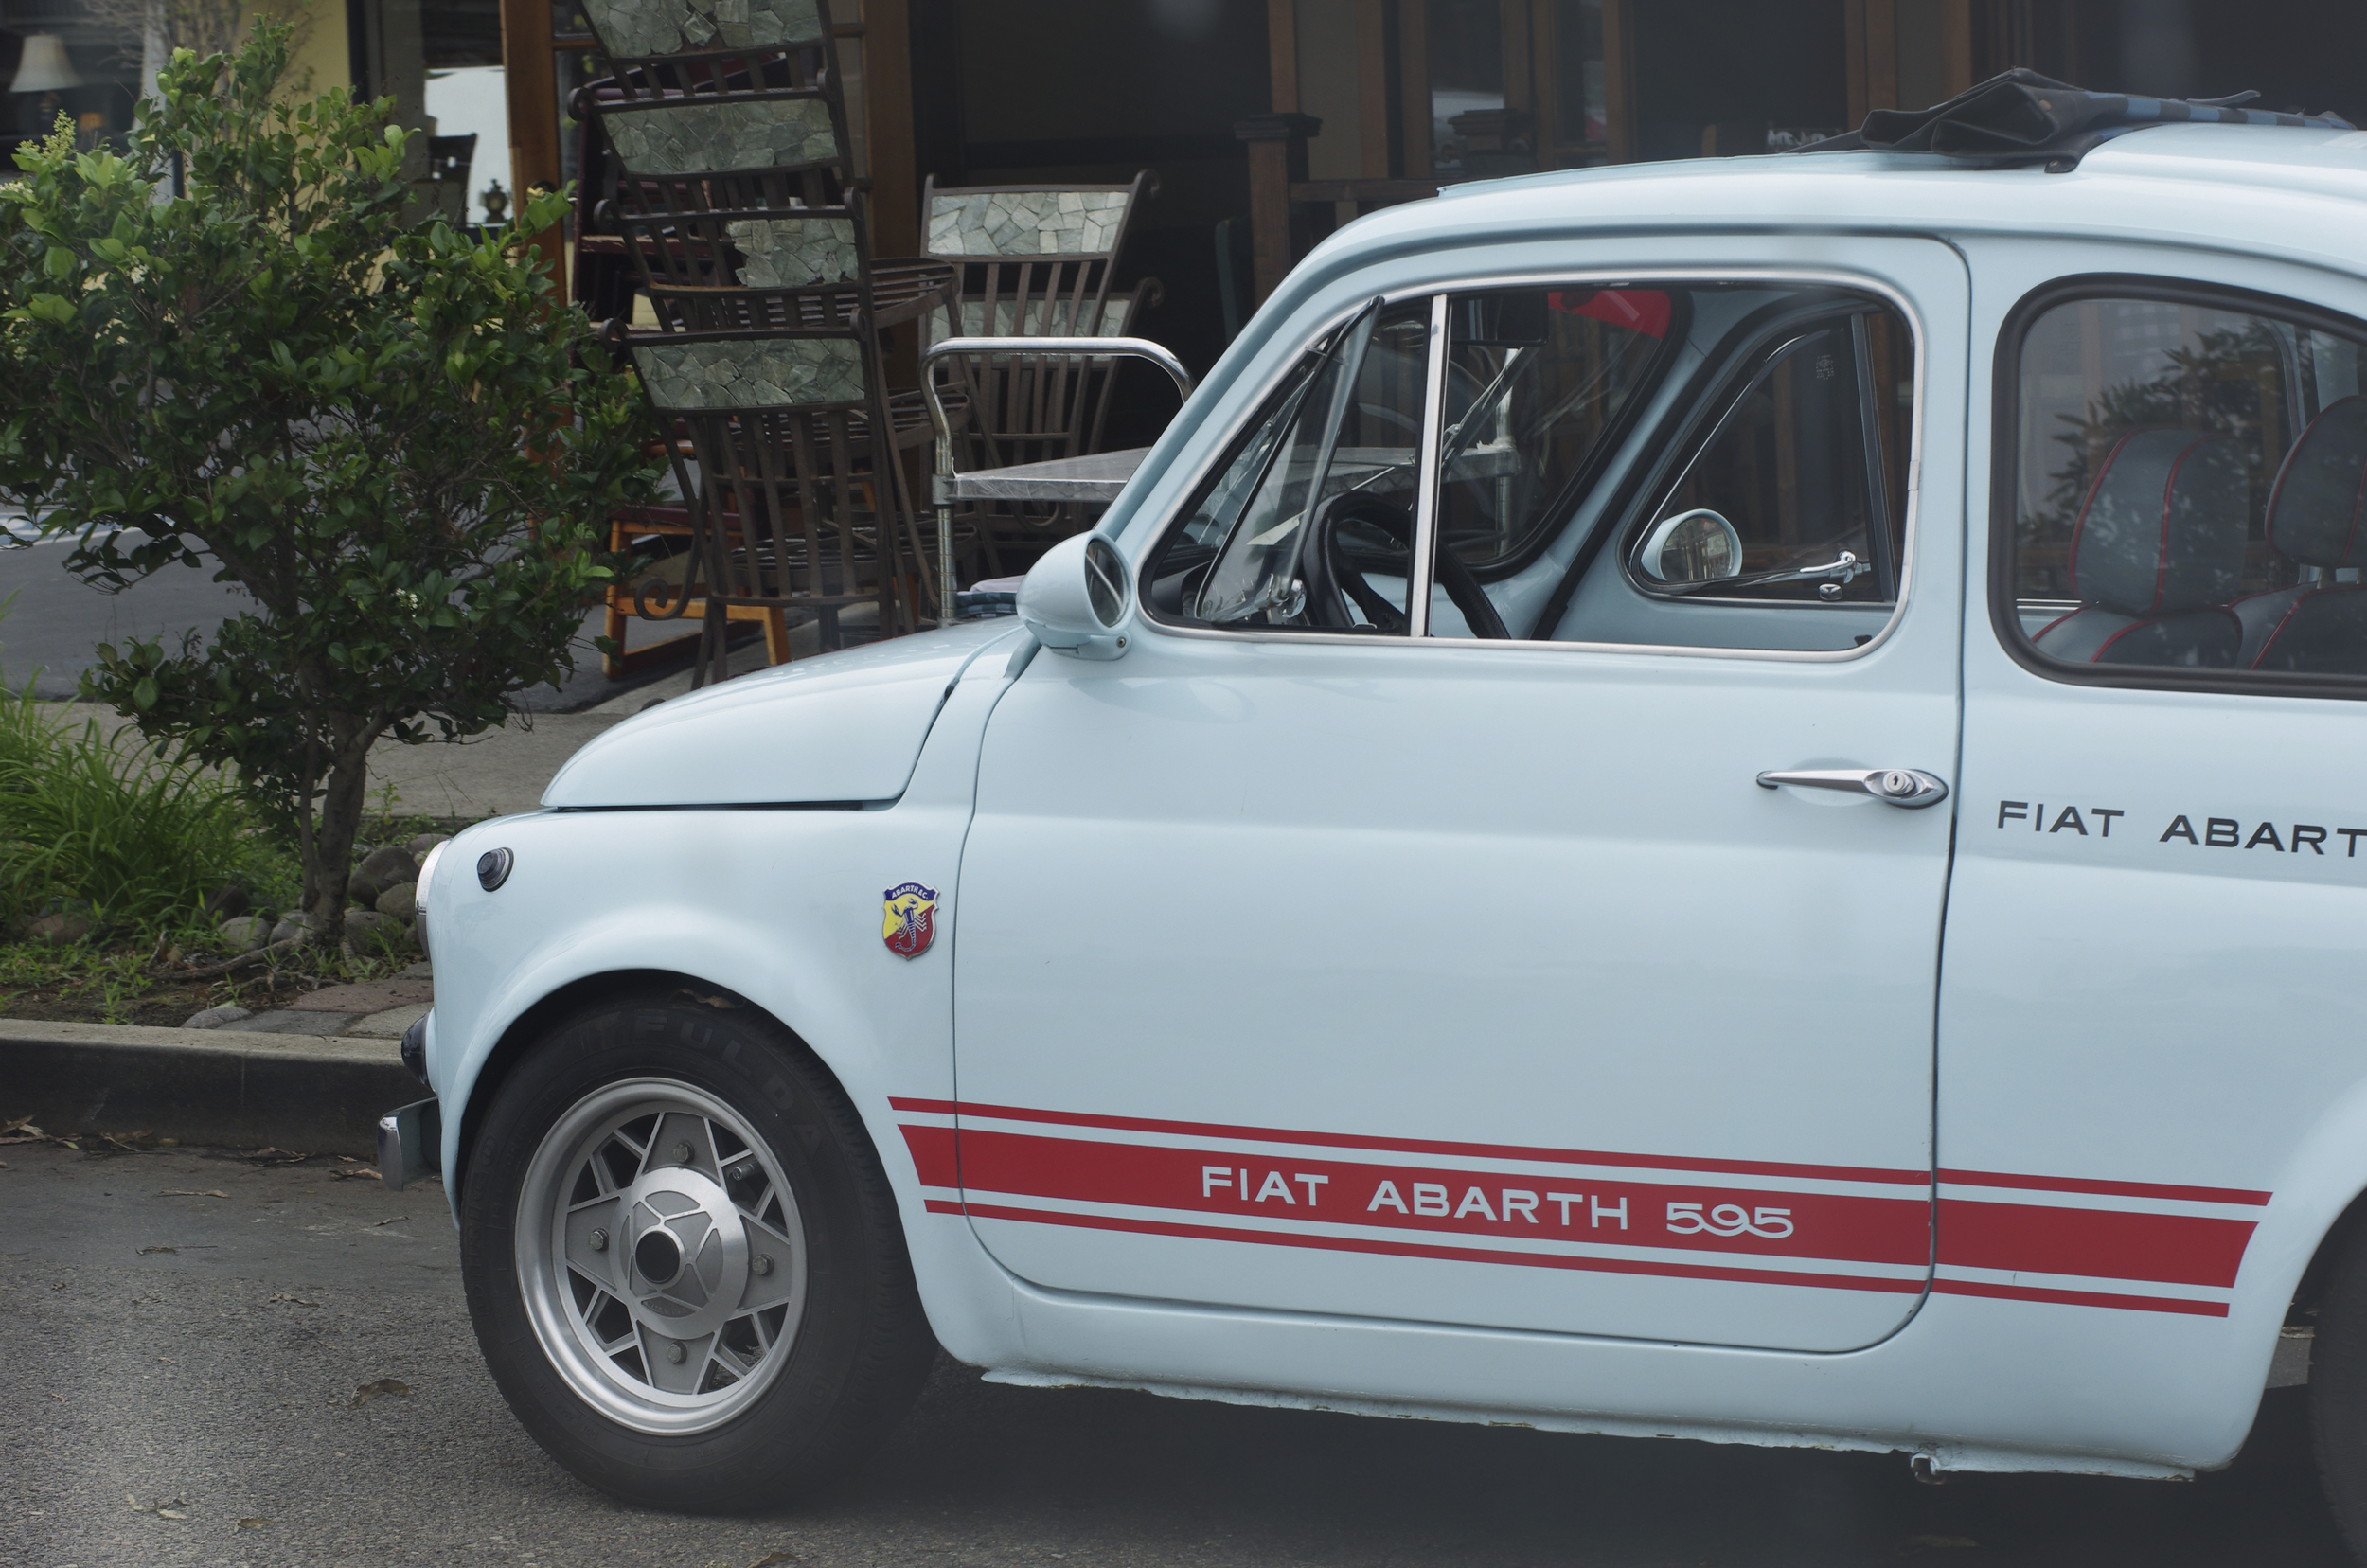 While cruising around we came upon this sweet Fiat Abarth.